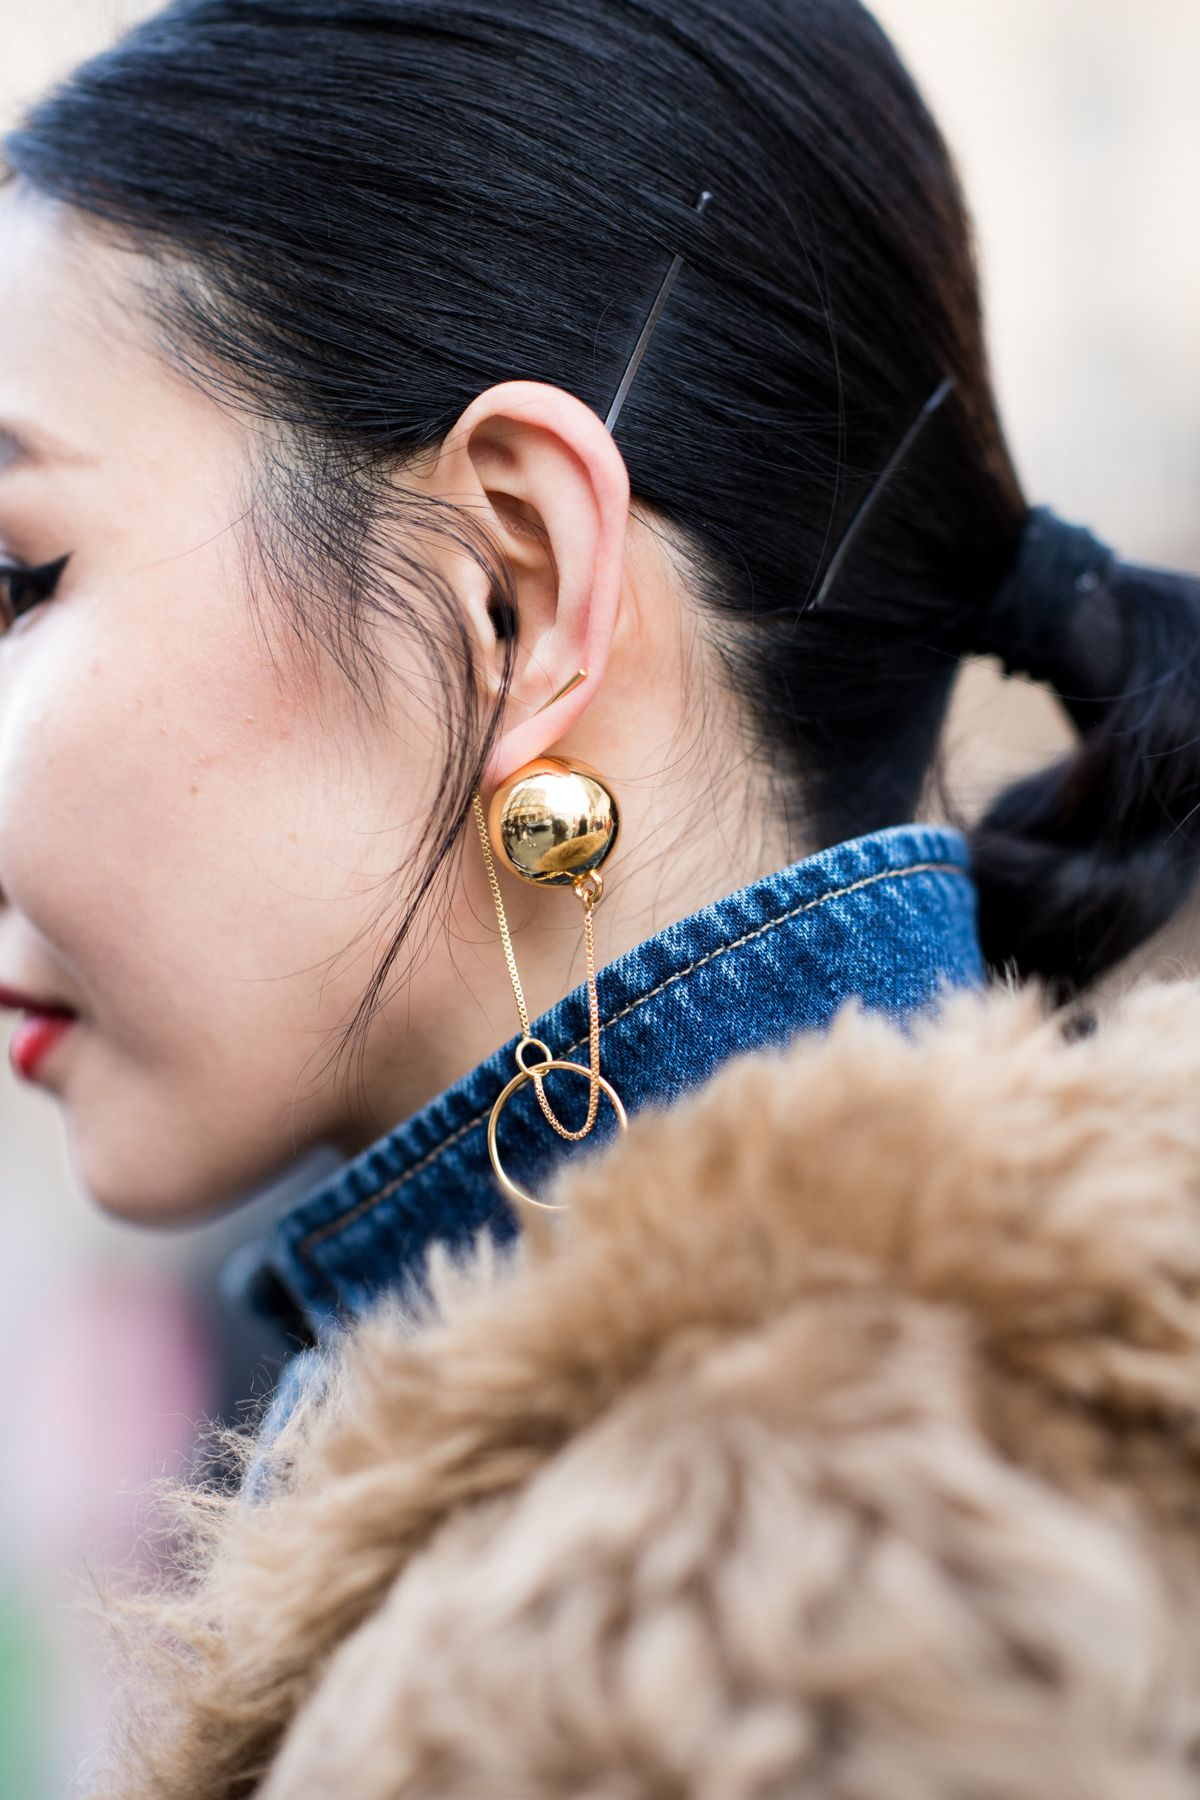 Statement earrings make an outfit, shop now at Farfetch